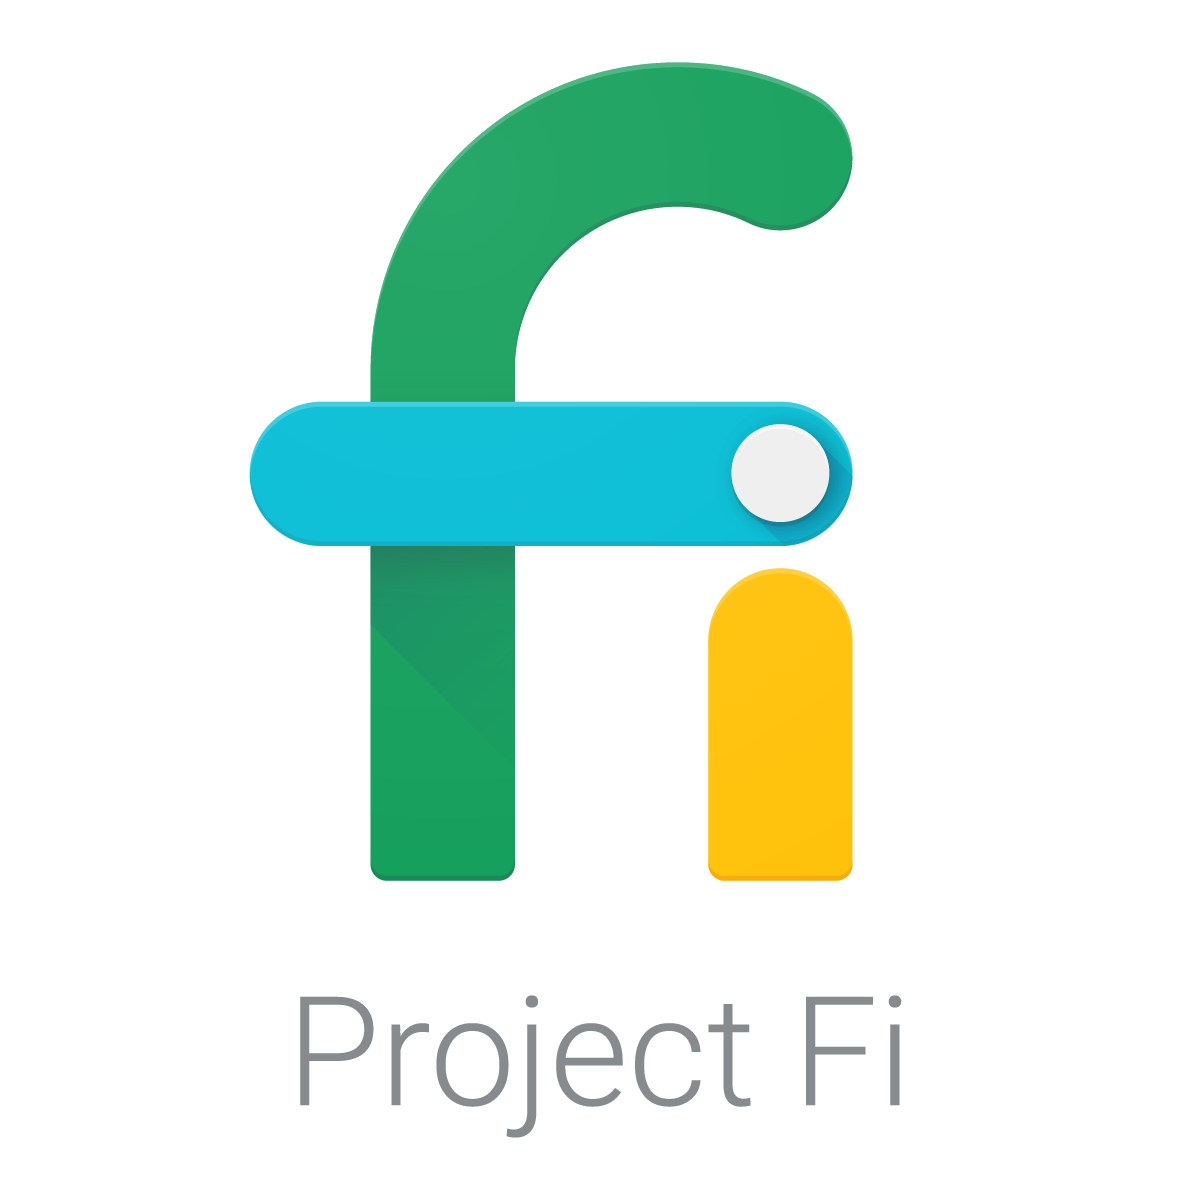 2016 twisted nonsense investments alphabet inc googl goog announced in an official blog post monday that its project fi wireless service has exited the invitation only beta period and the biocorpaavc Choice Image